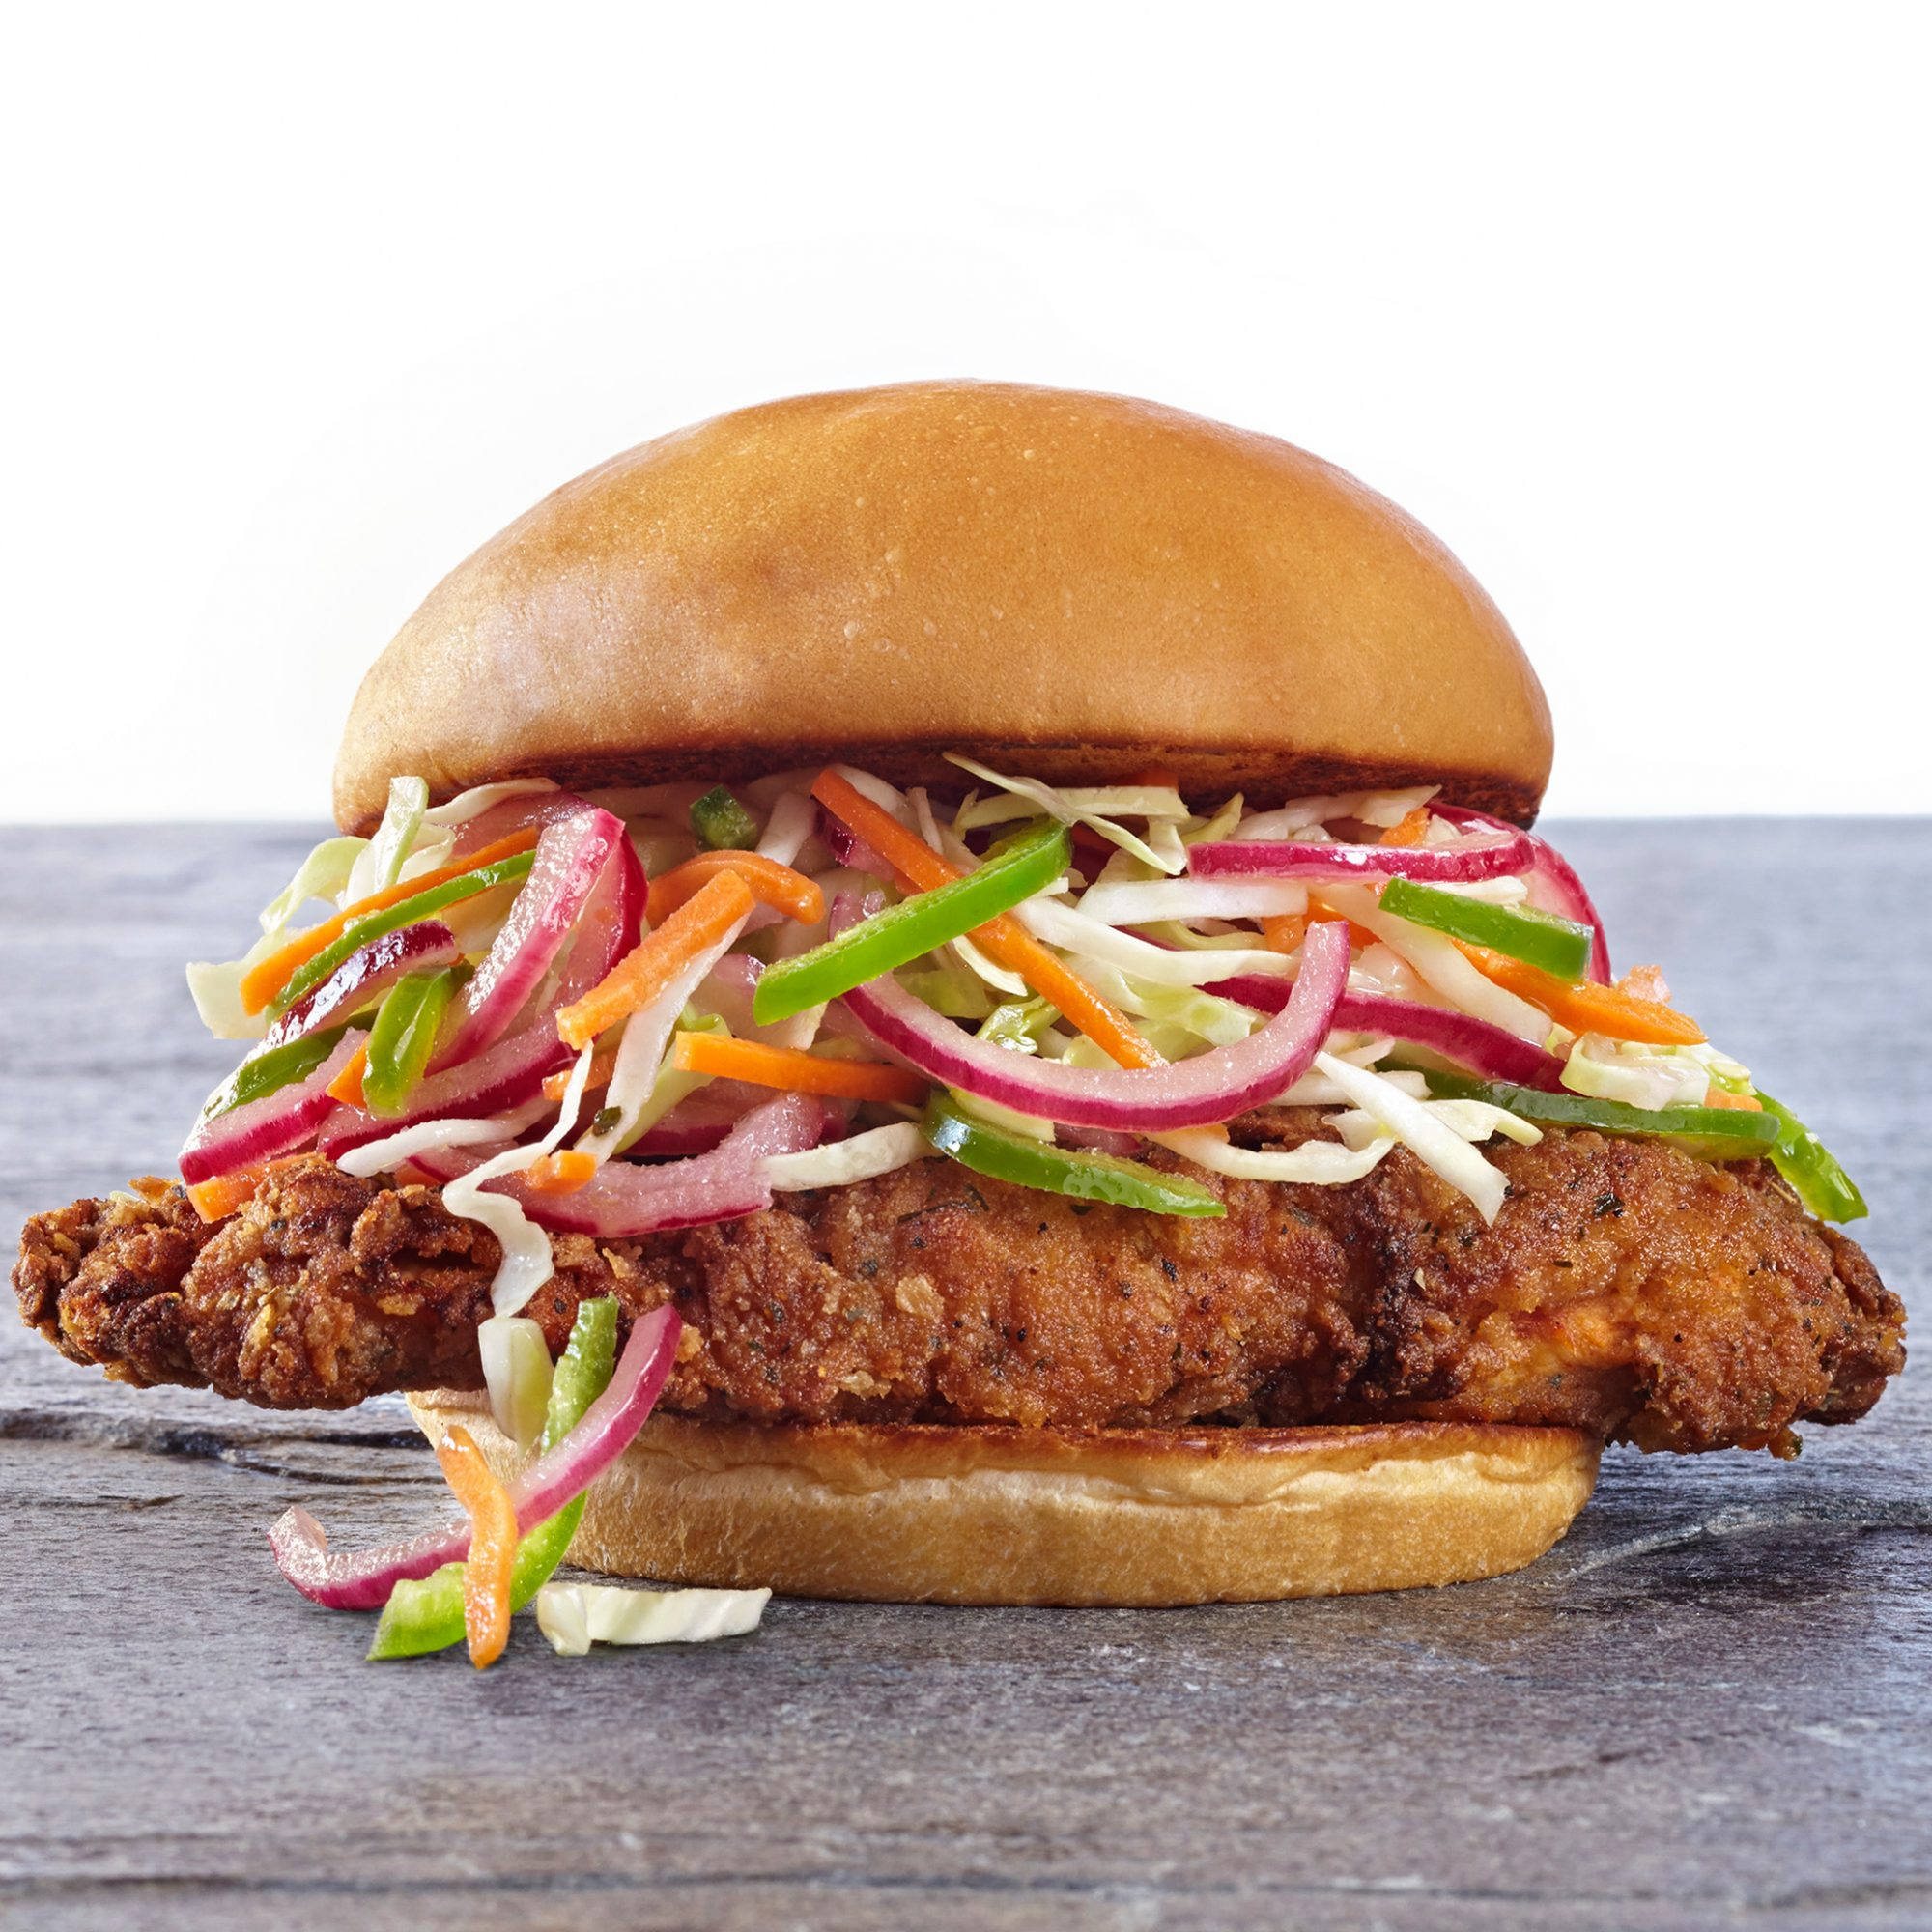 The First USDA Certified Organic Fast Food Restaurant Opened in the SF Bay Area